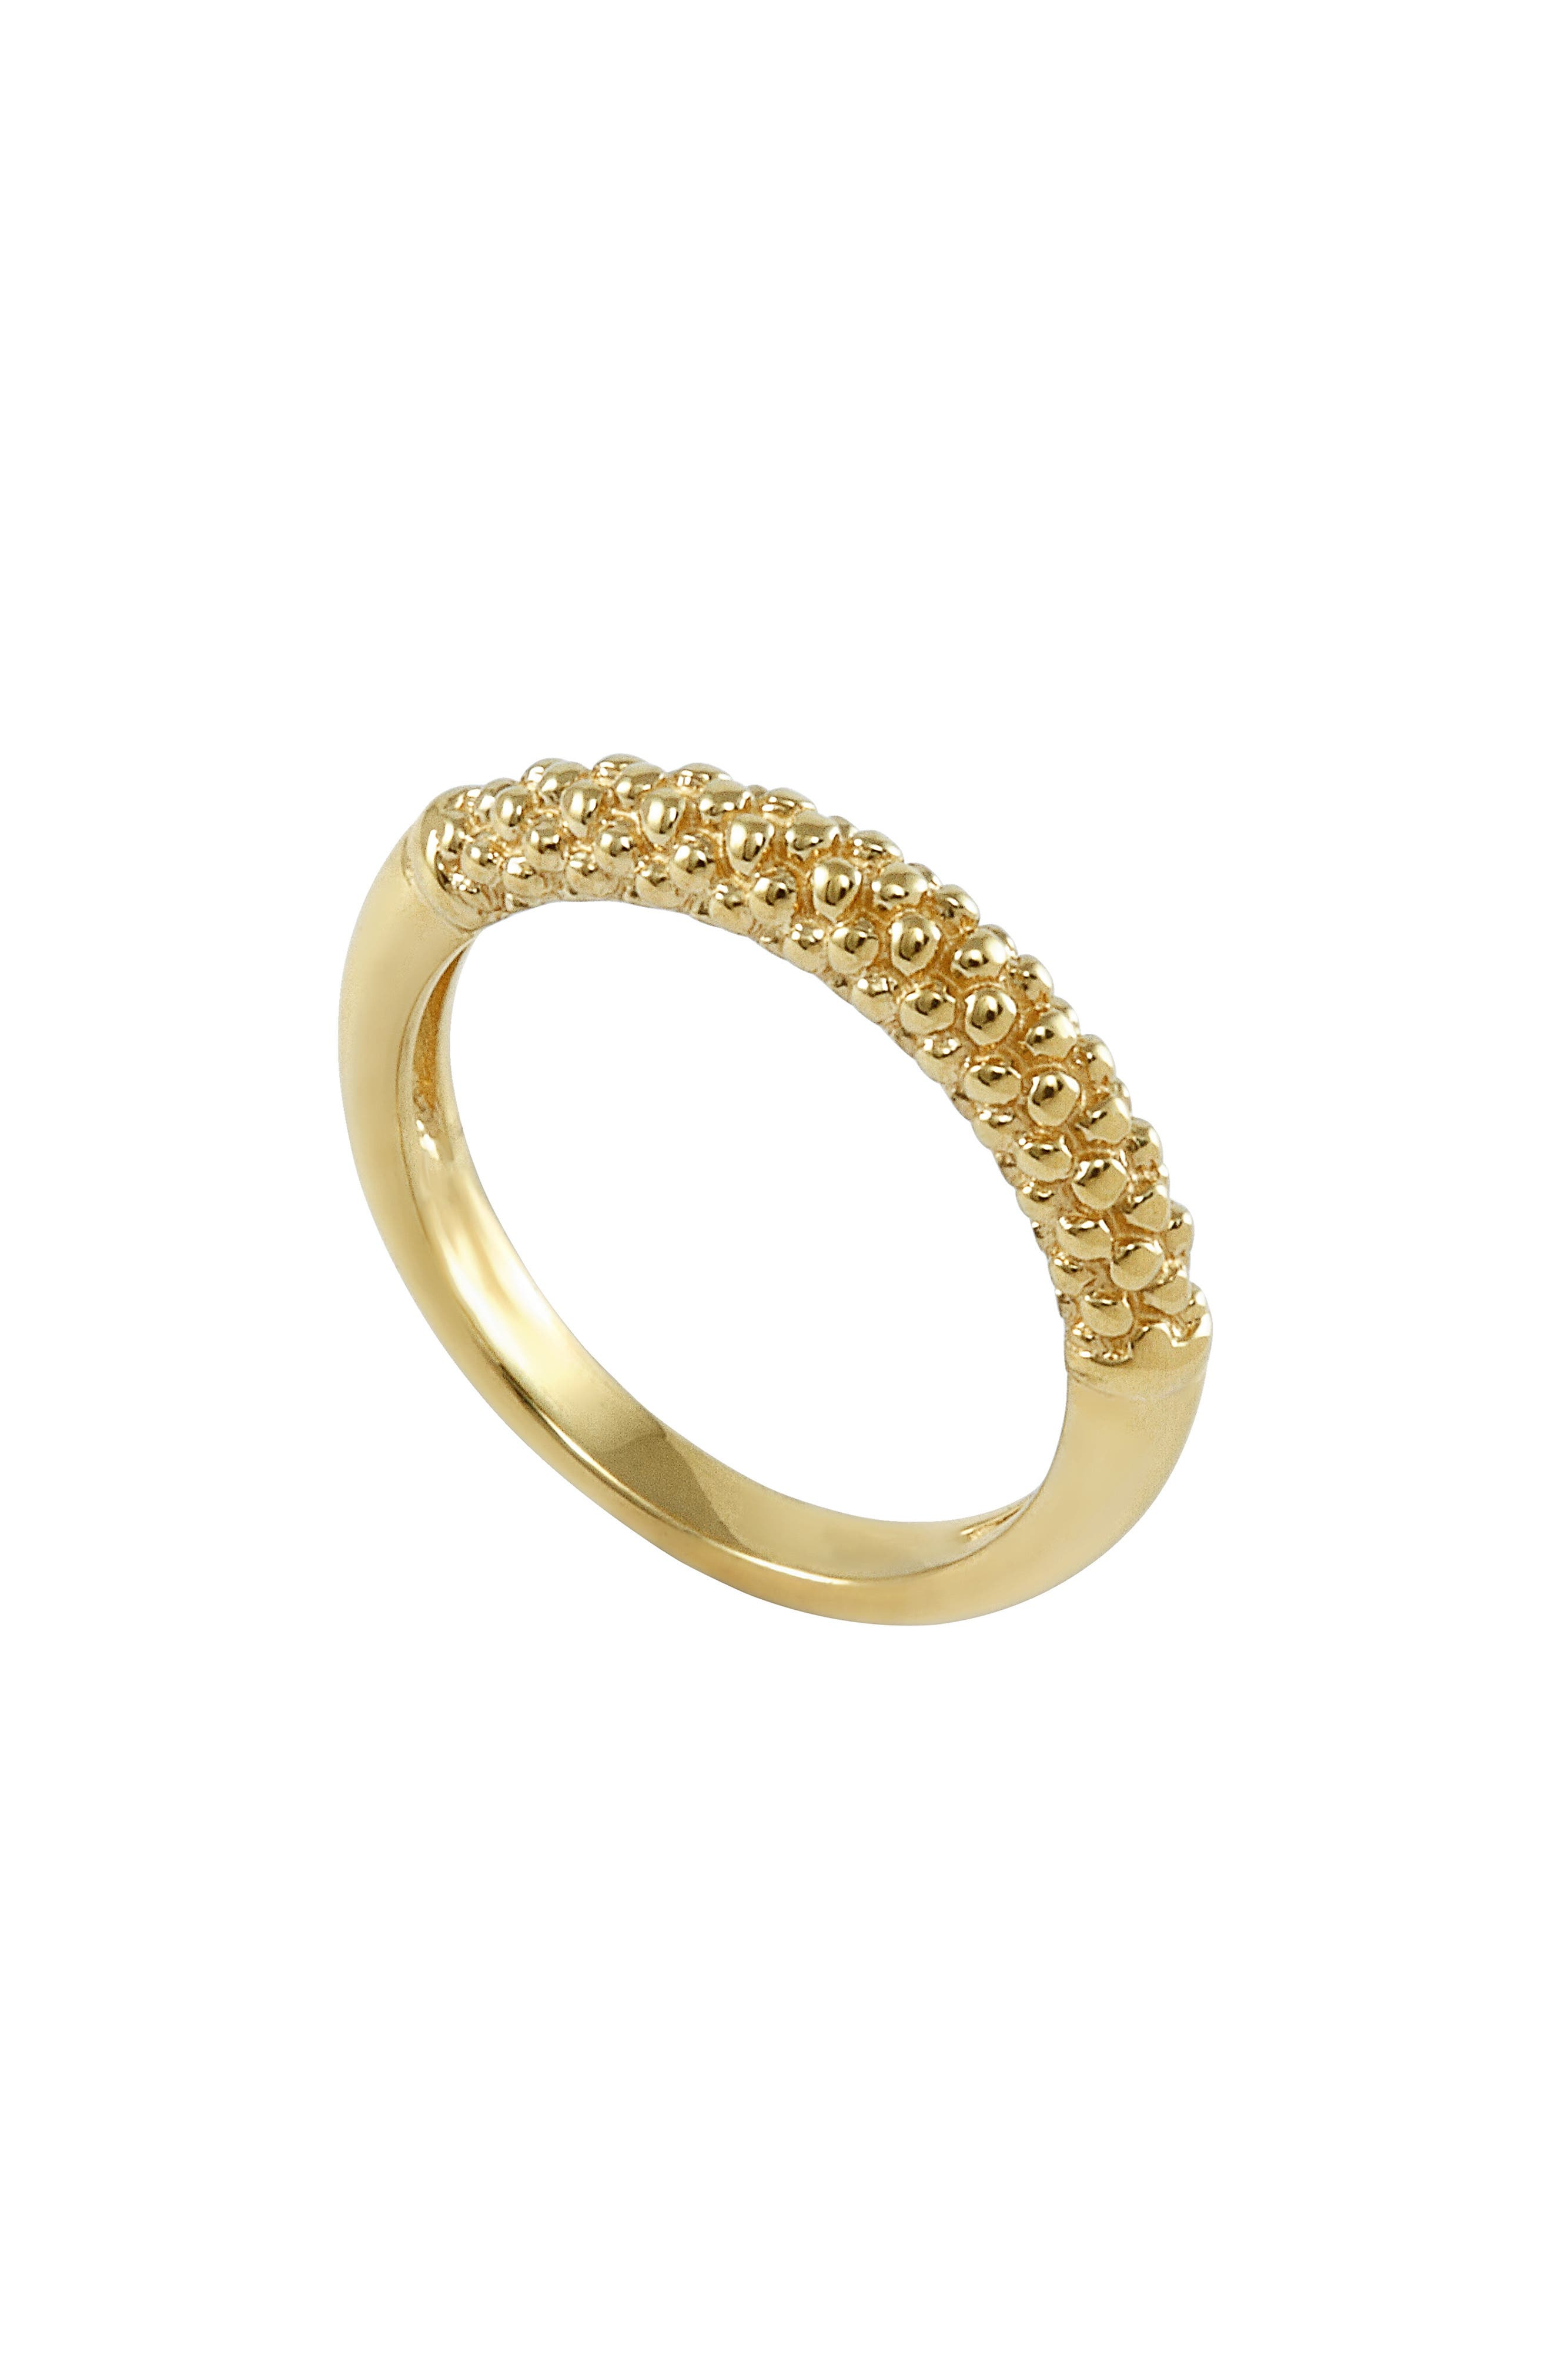 Caviar Band Ring,                         Main,                         color, Gold